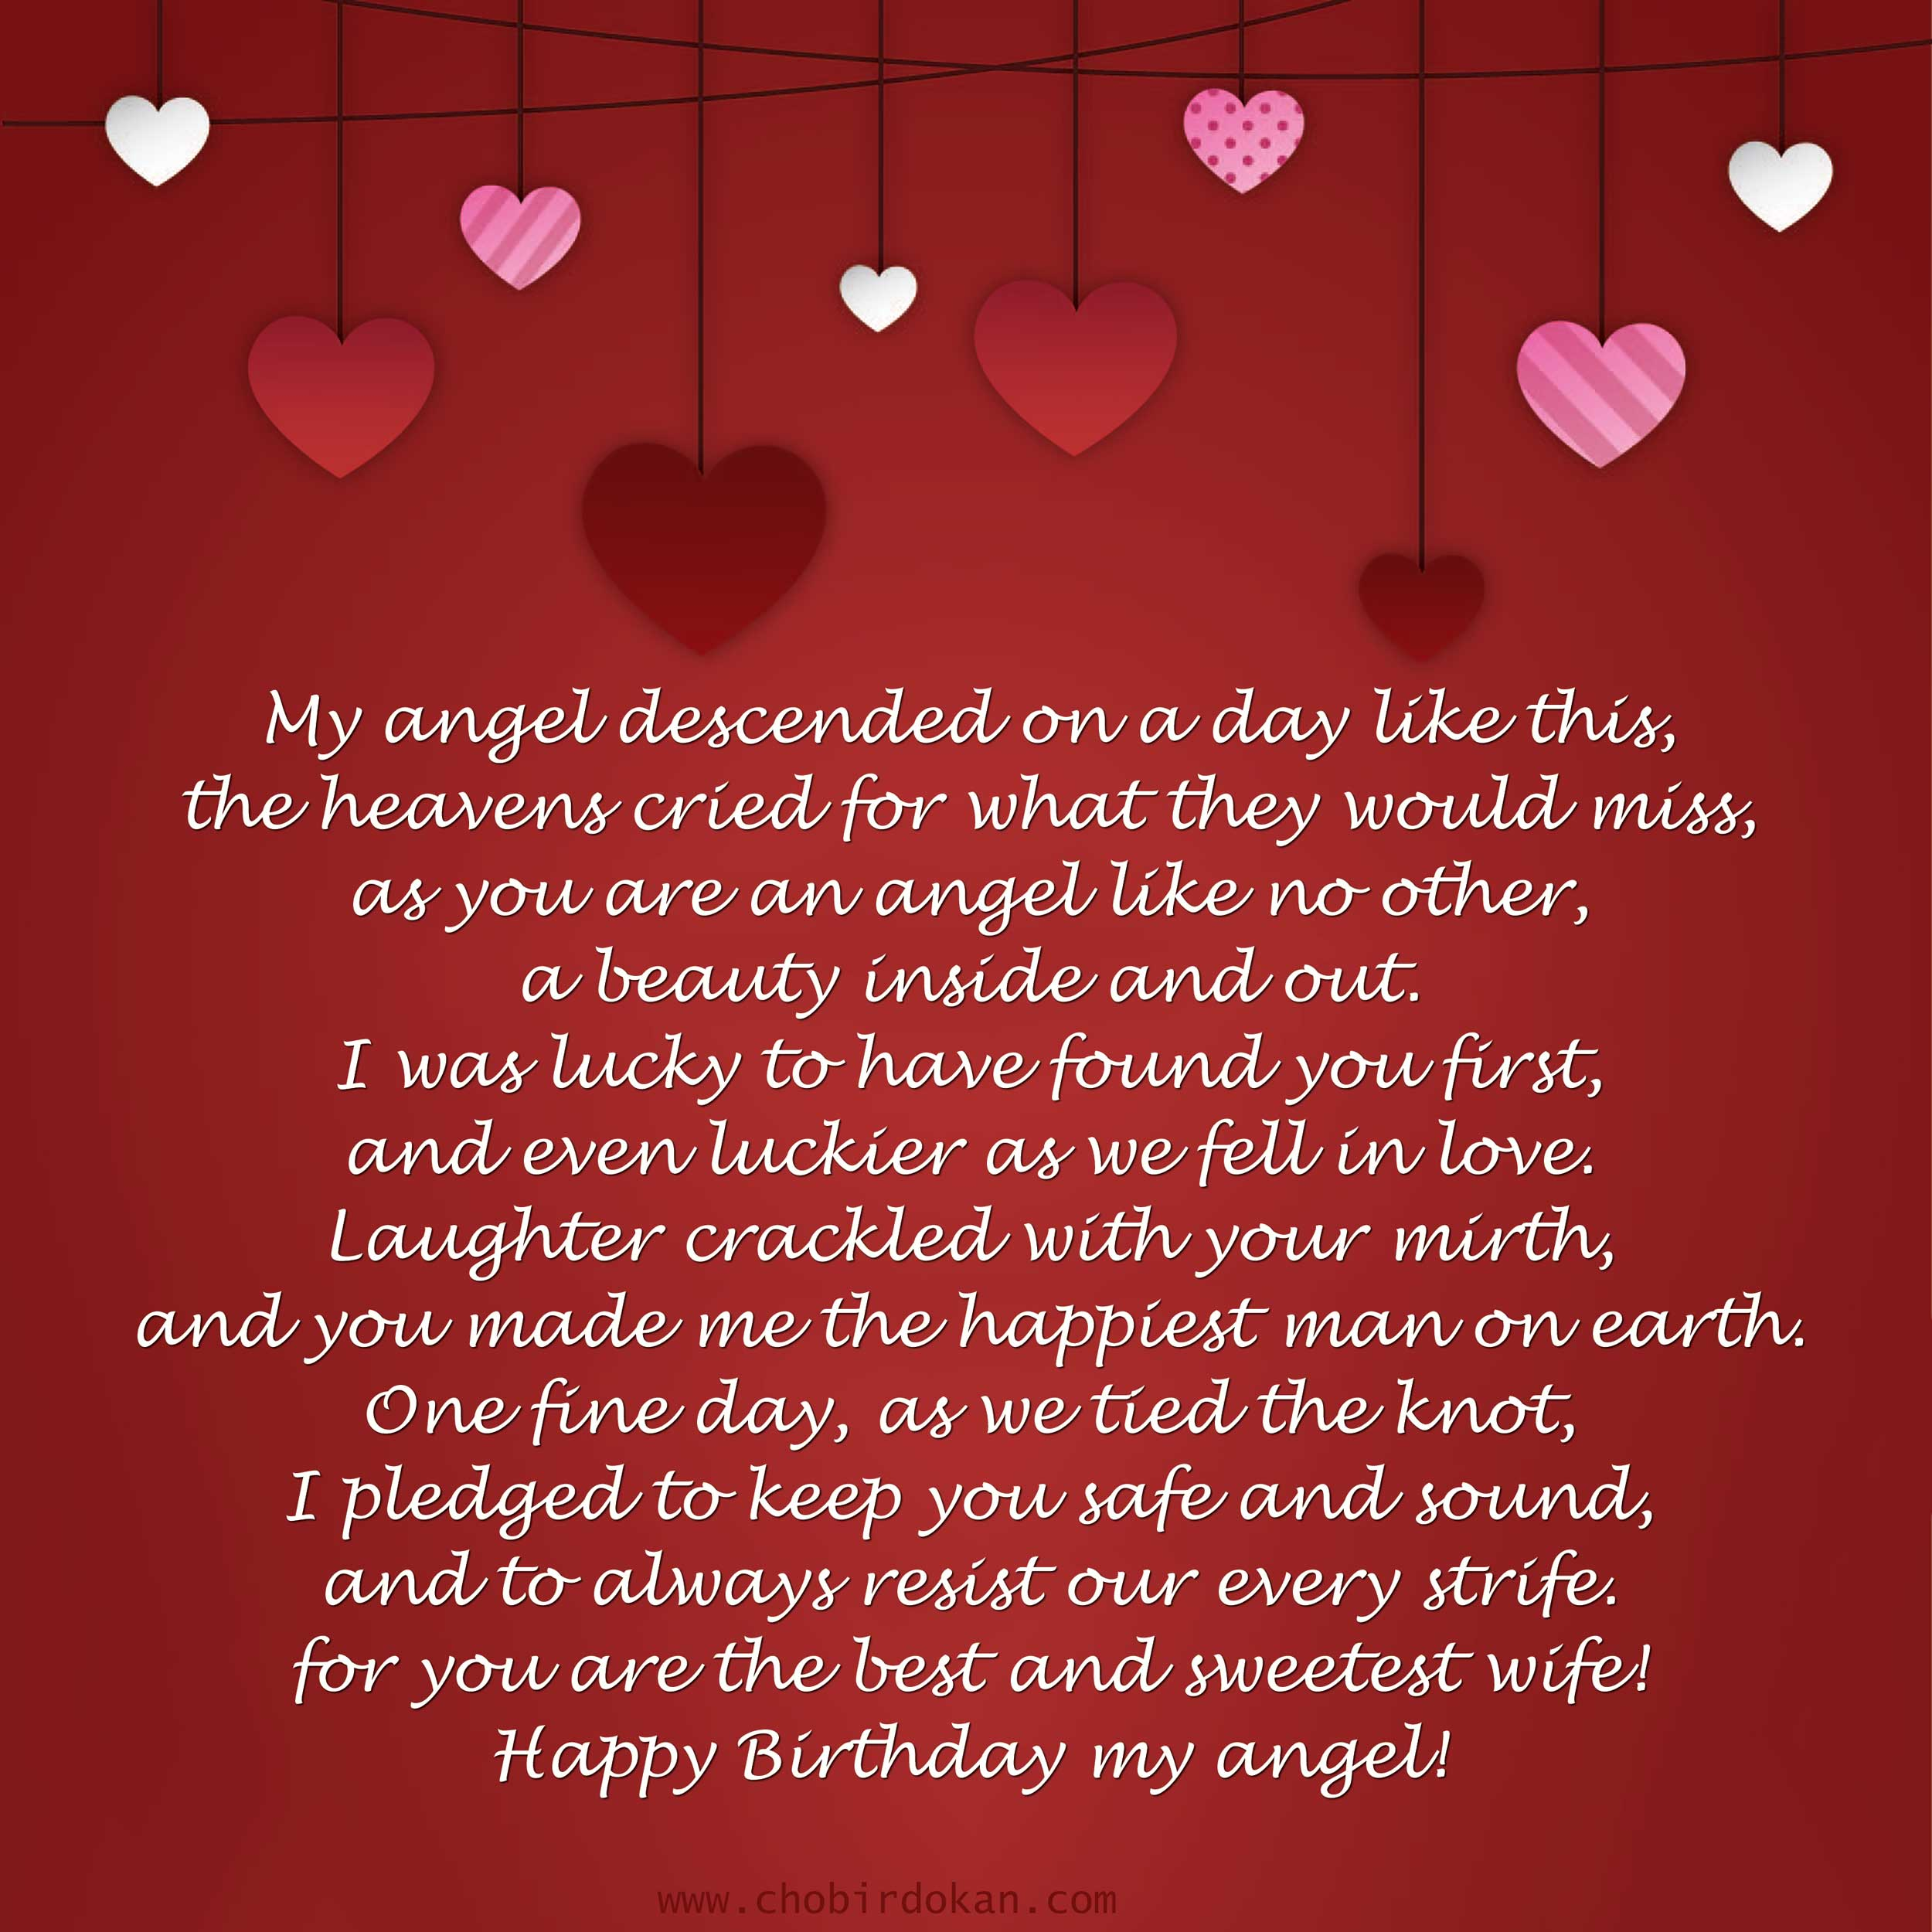 Romantic Happy Birthday Poems For Her For Girlfriend Or Wifepoems